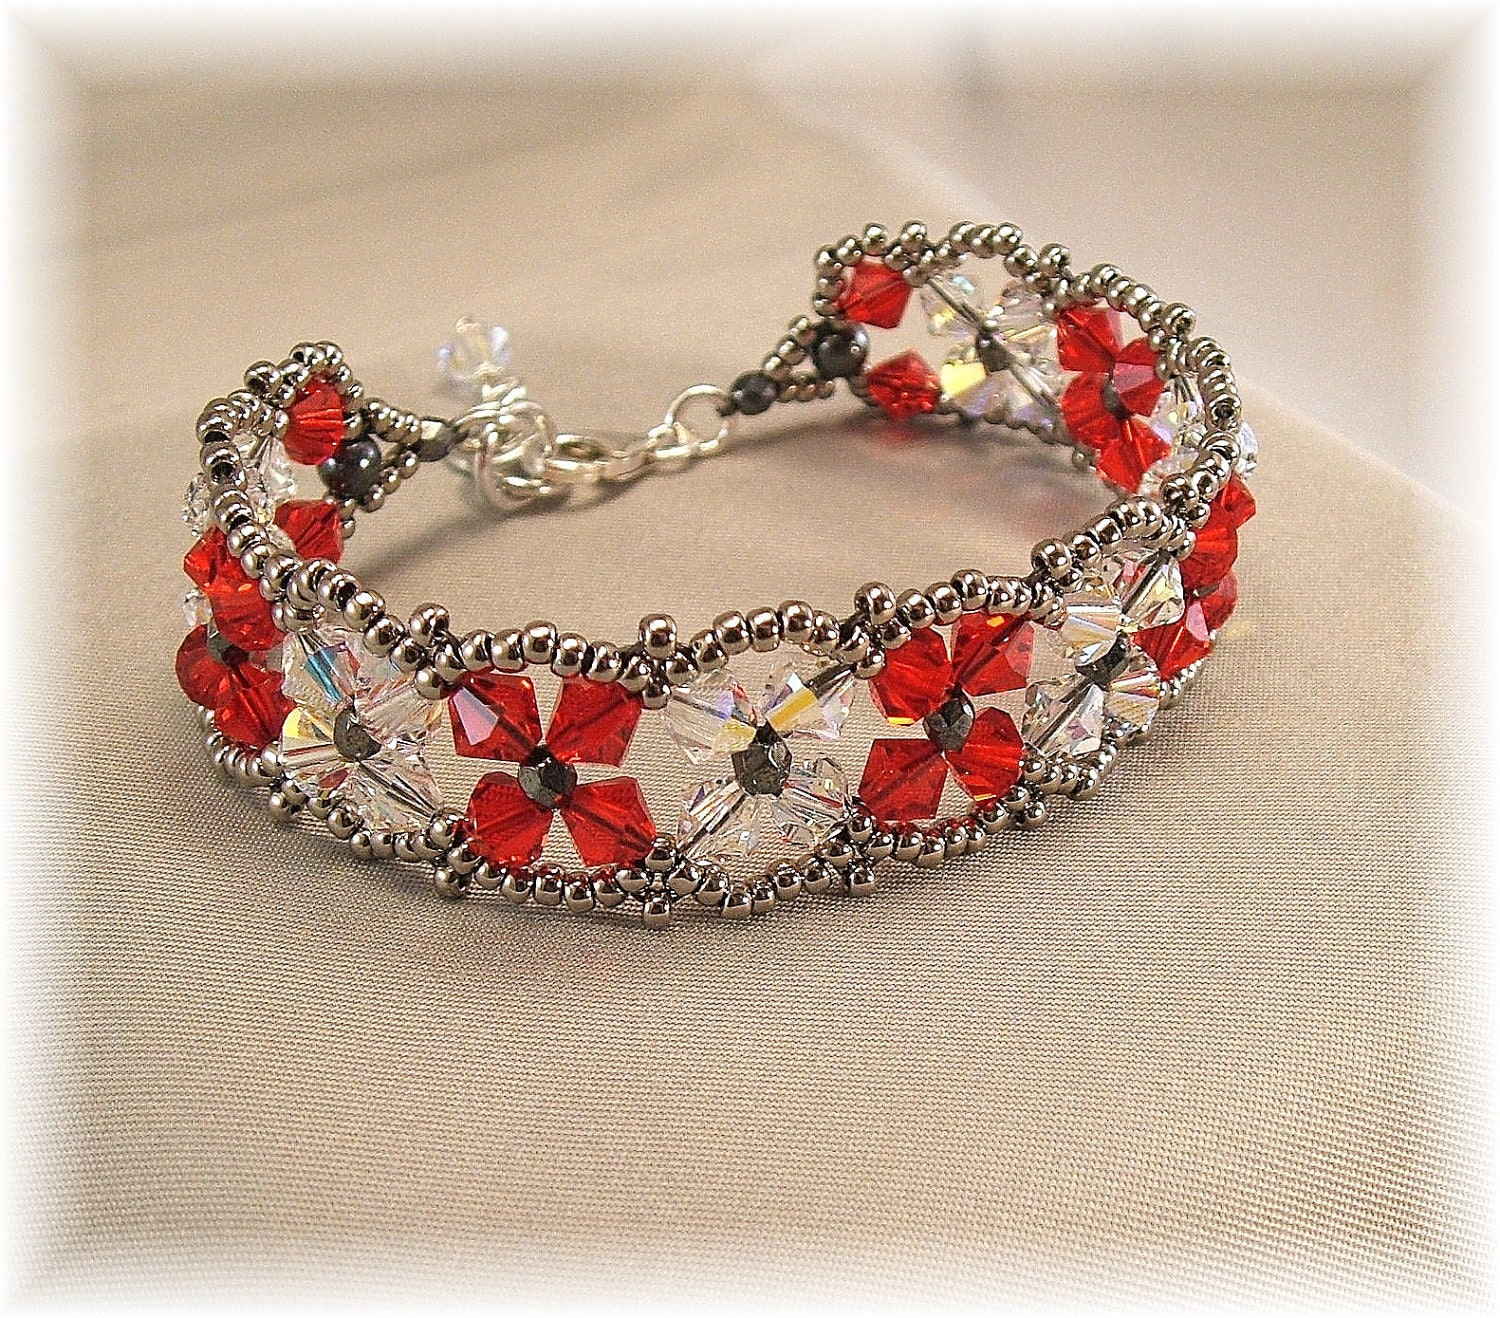 Light Siam Red and Crystal AB Bridesmaid Bracelet by Handwired from etsy.com